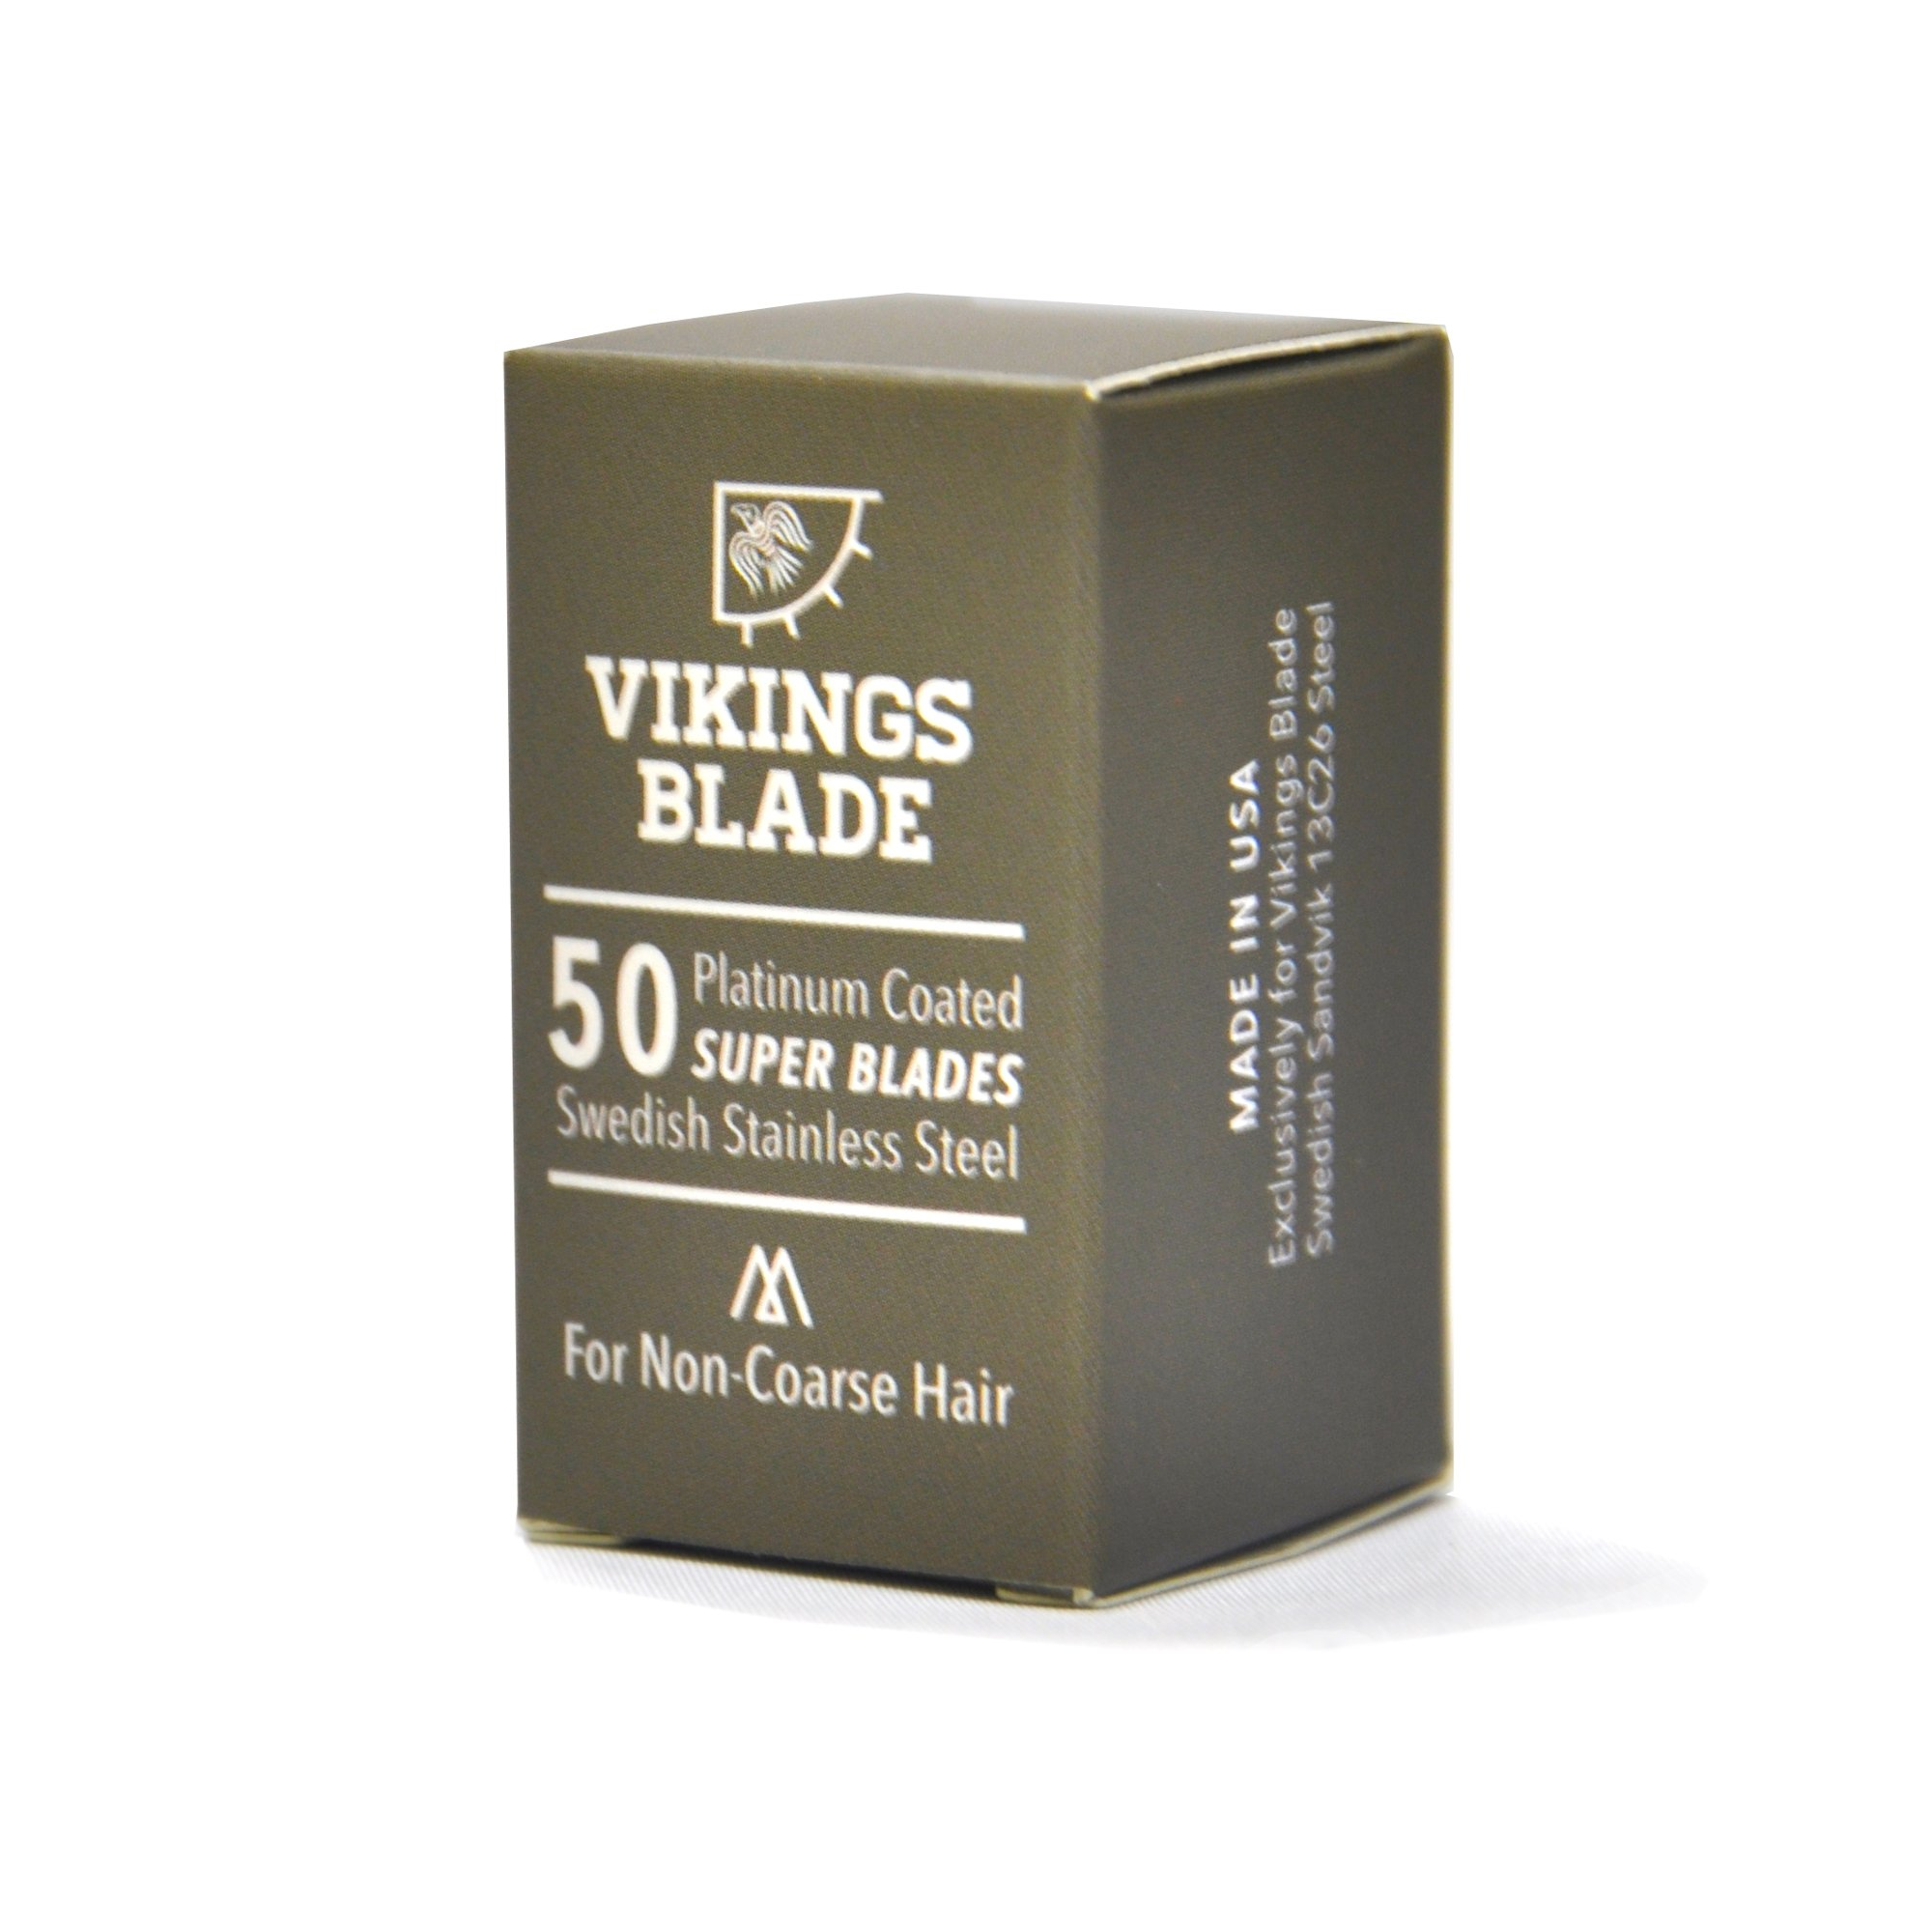 VIKINGS BLADE Swedish Steel Replacement Razor Blades, 50 Count (9 to 12 months supply), Mild & Safe